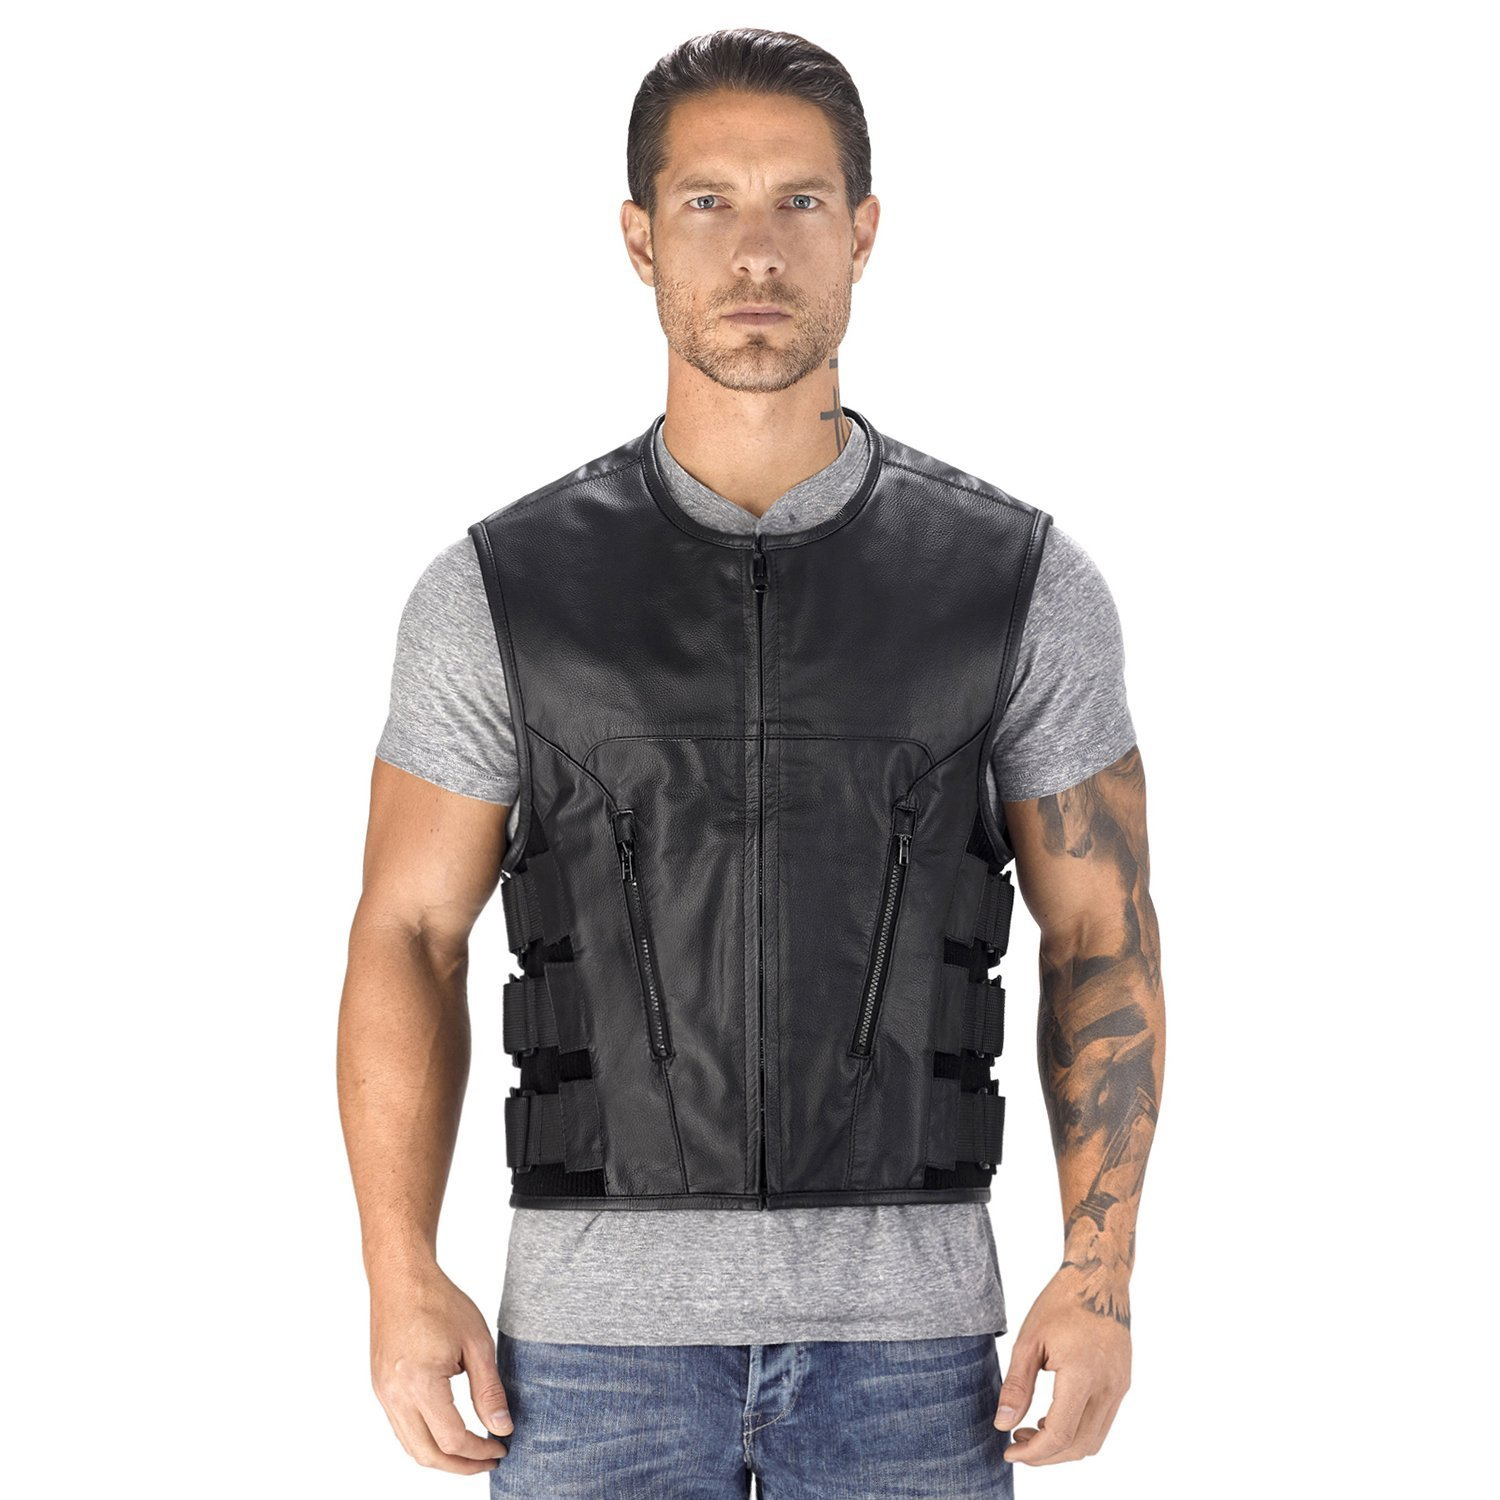 Viking Cycle Odin Motorcycle Leather Vest for Men (XL) by Viking Cycle